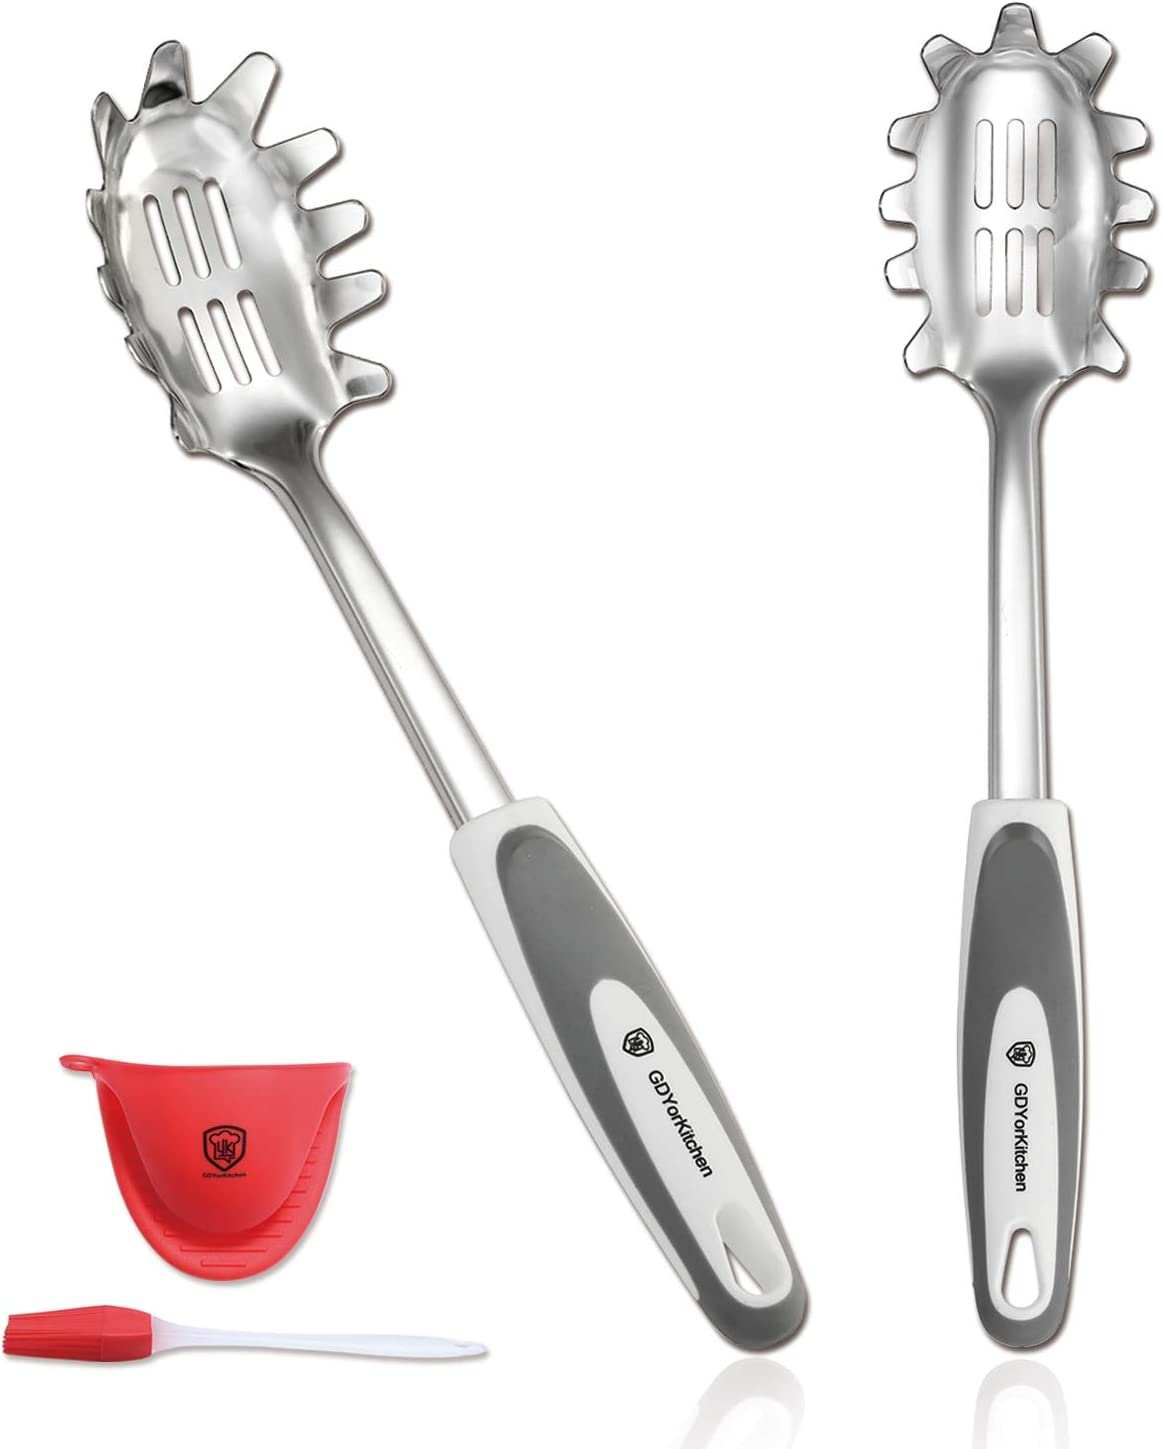 Spaghetti Spoon Server (Set Of 2) - Stainless Steel Slotted Pasta Spoon With Durable Pasta Fork, Comfortable Grip Design Pasta Server For Kitchen, Free Silicone Brush And Bonus Oven Mitt - For Gifts